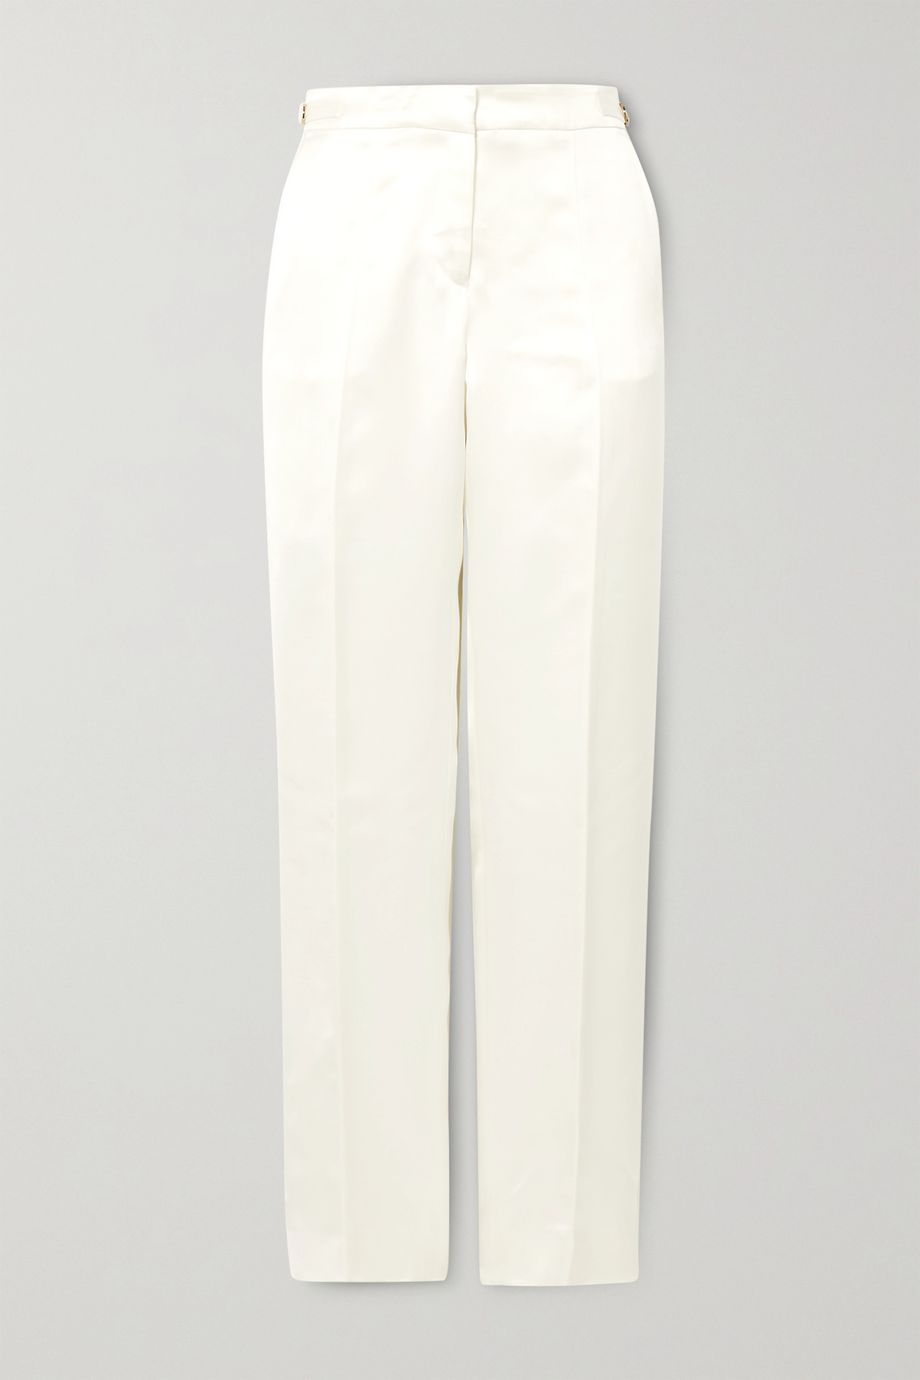 Gabriela Hearst Pantalon droit en satin de soie Francisco